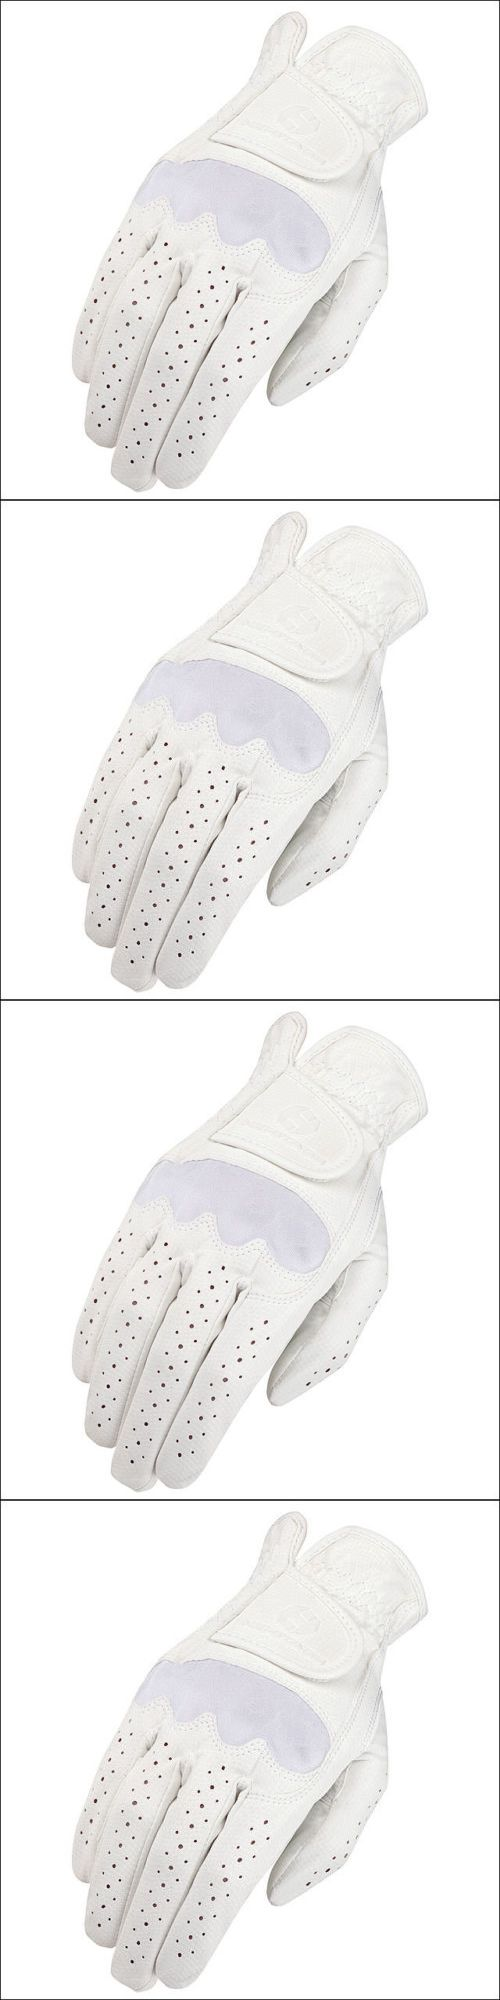 Riding Gloves 95104: 10 Size Heritage Spectrum Show Horse Riding Equestrian Glove Leather White -> BUY IT NOW ONLY: $33.99 on eBay!